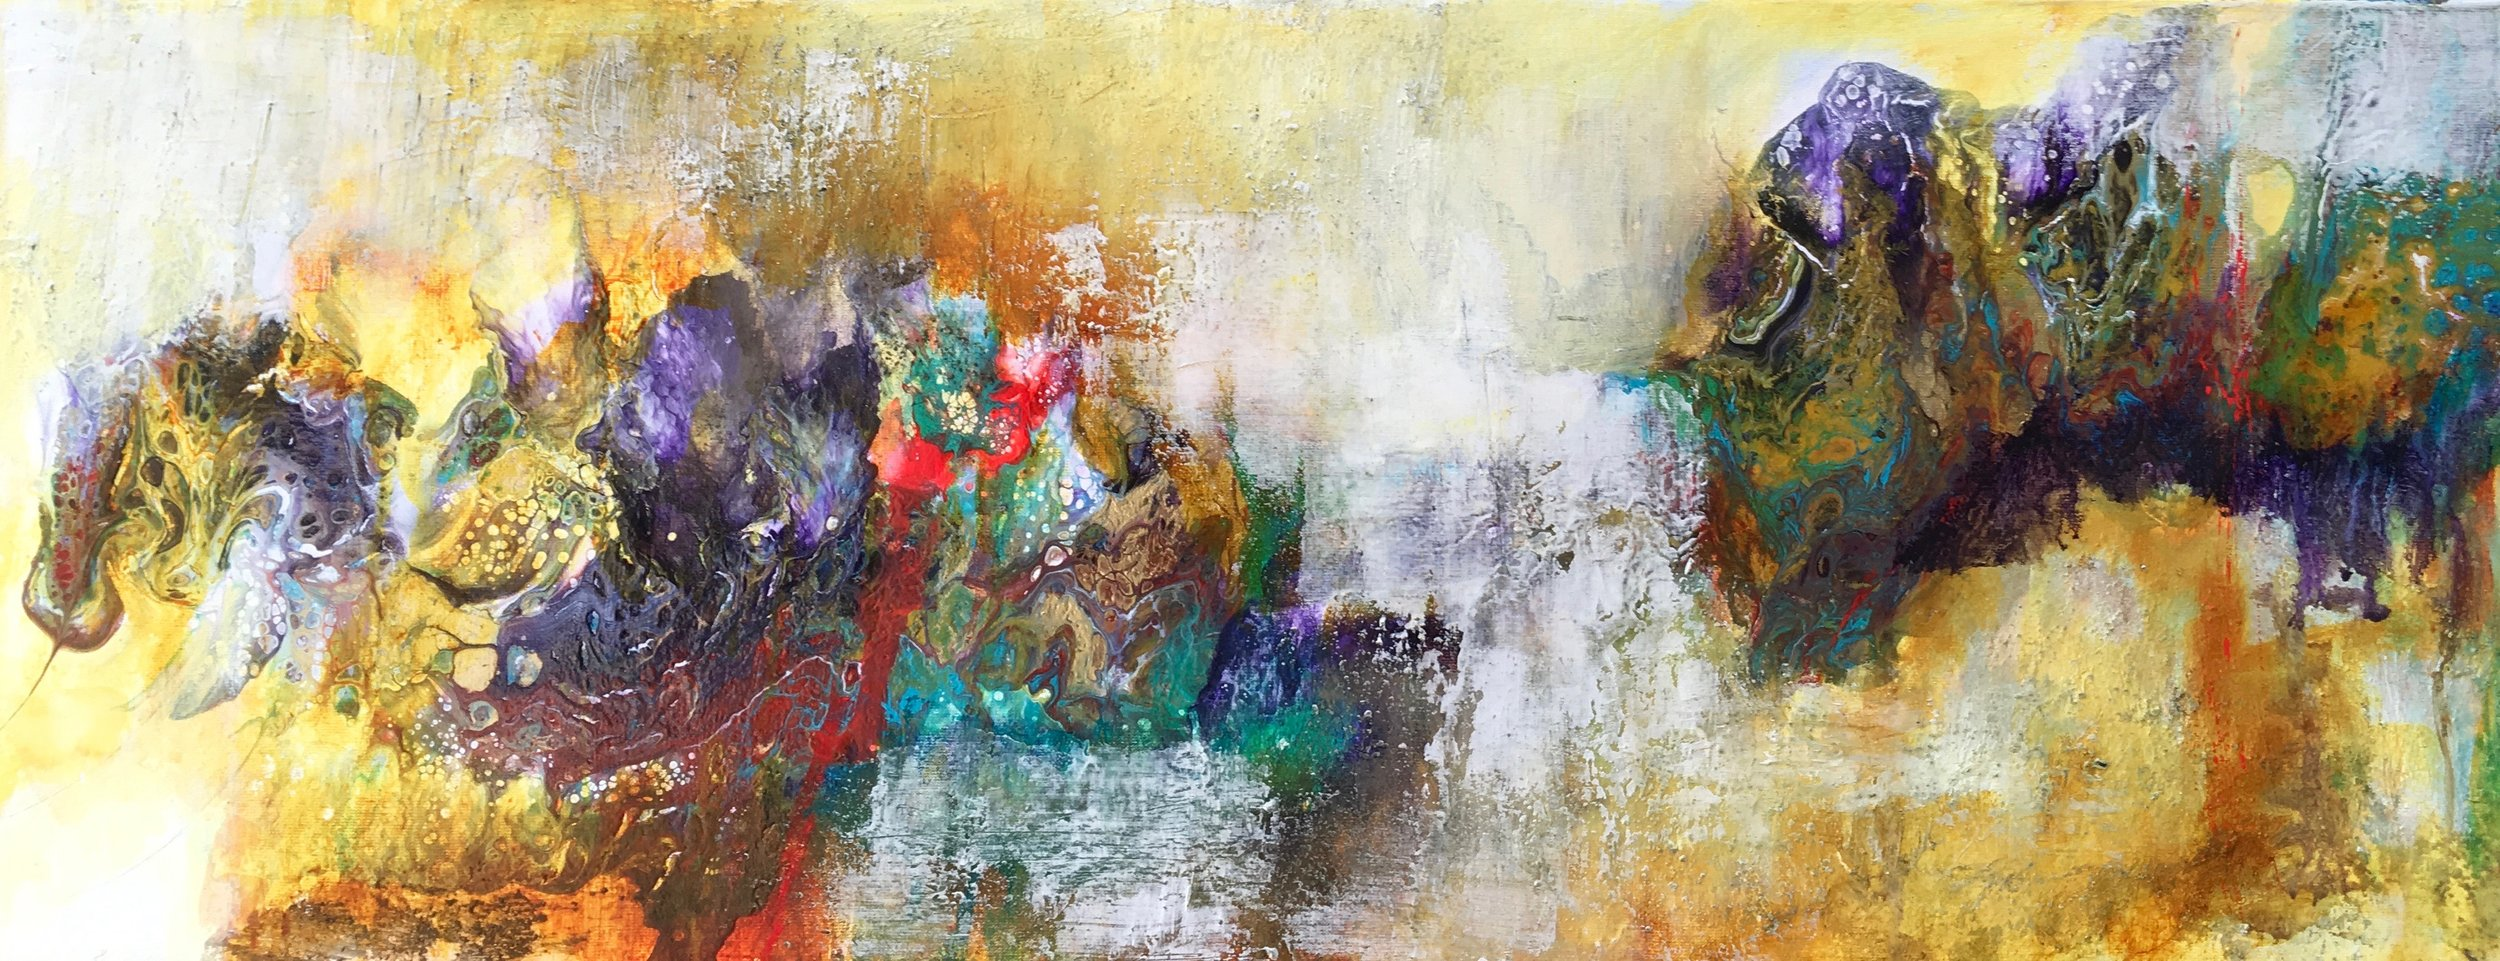 Chasing Abstraction >> Rebel Artlyrical Abstraction On Canvas Rebecca Van Wierstrebel Art